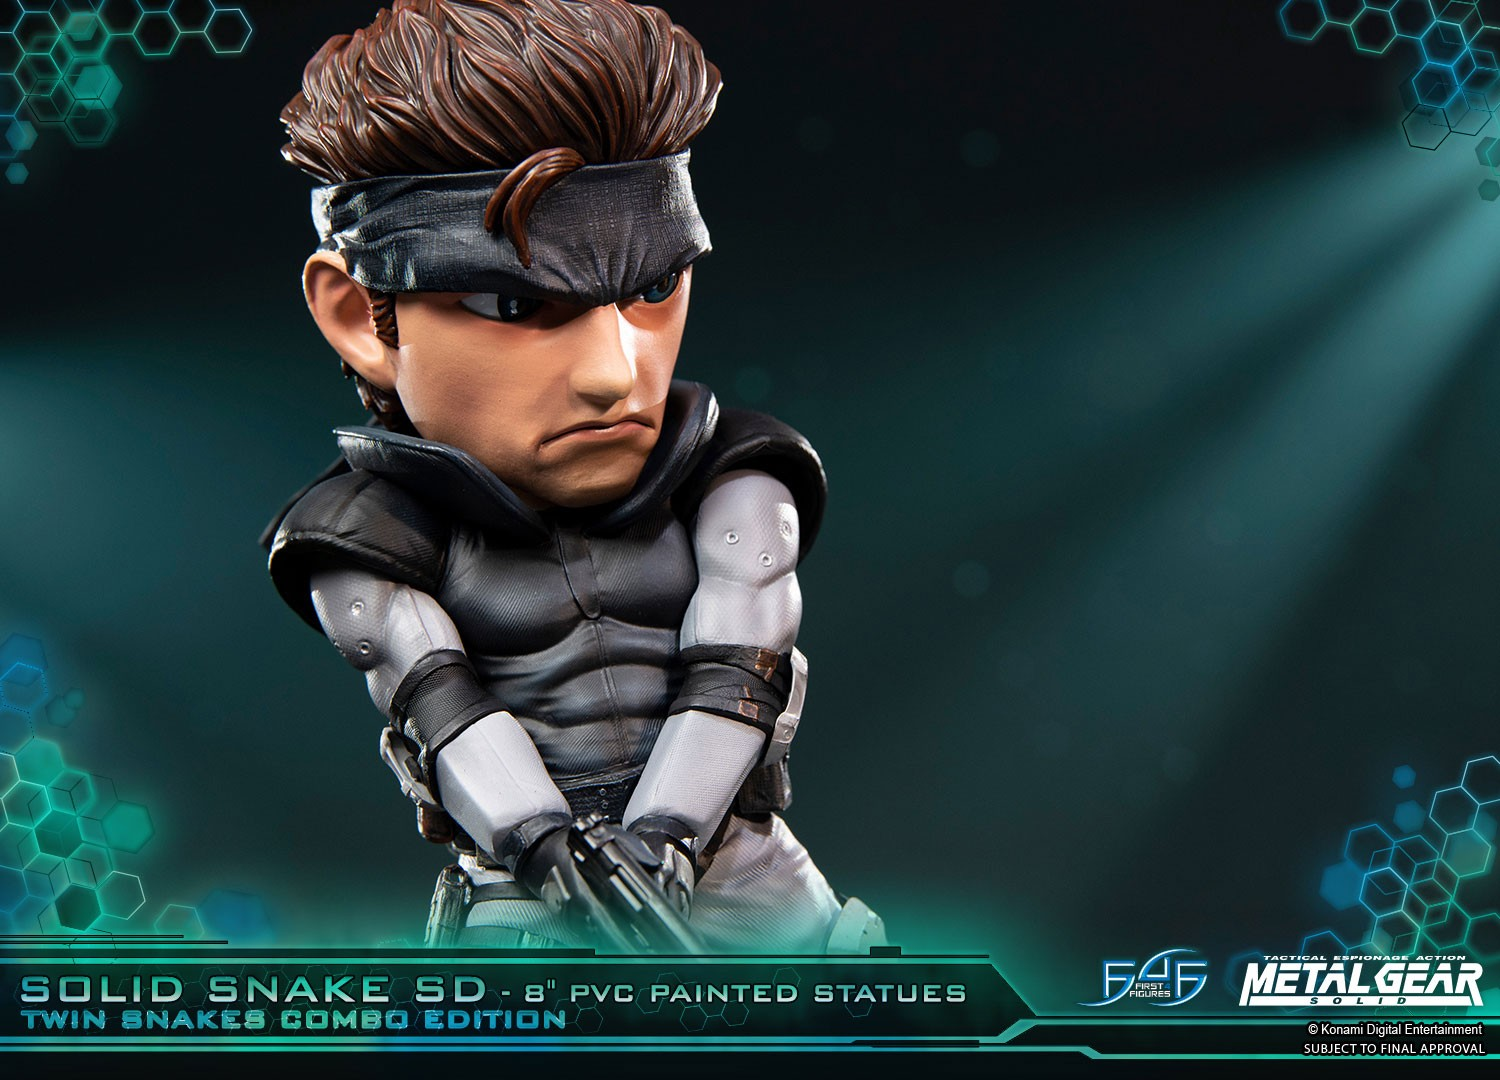 Solid Snake SD Twin Snakes Combo Edition - PVC - Products